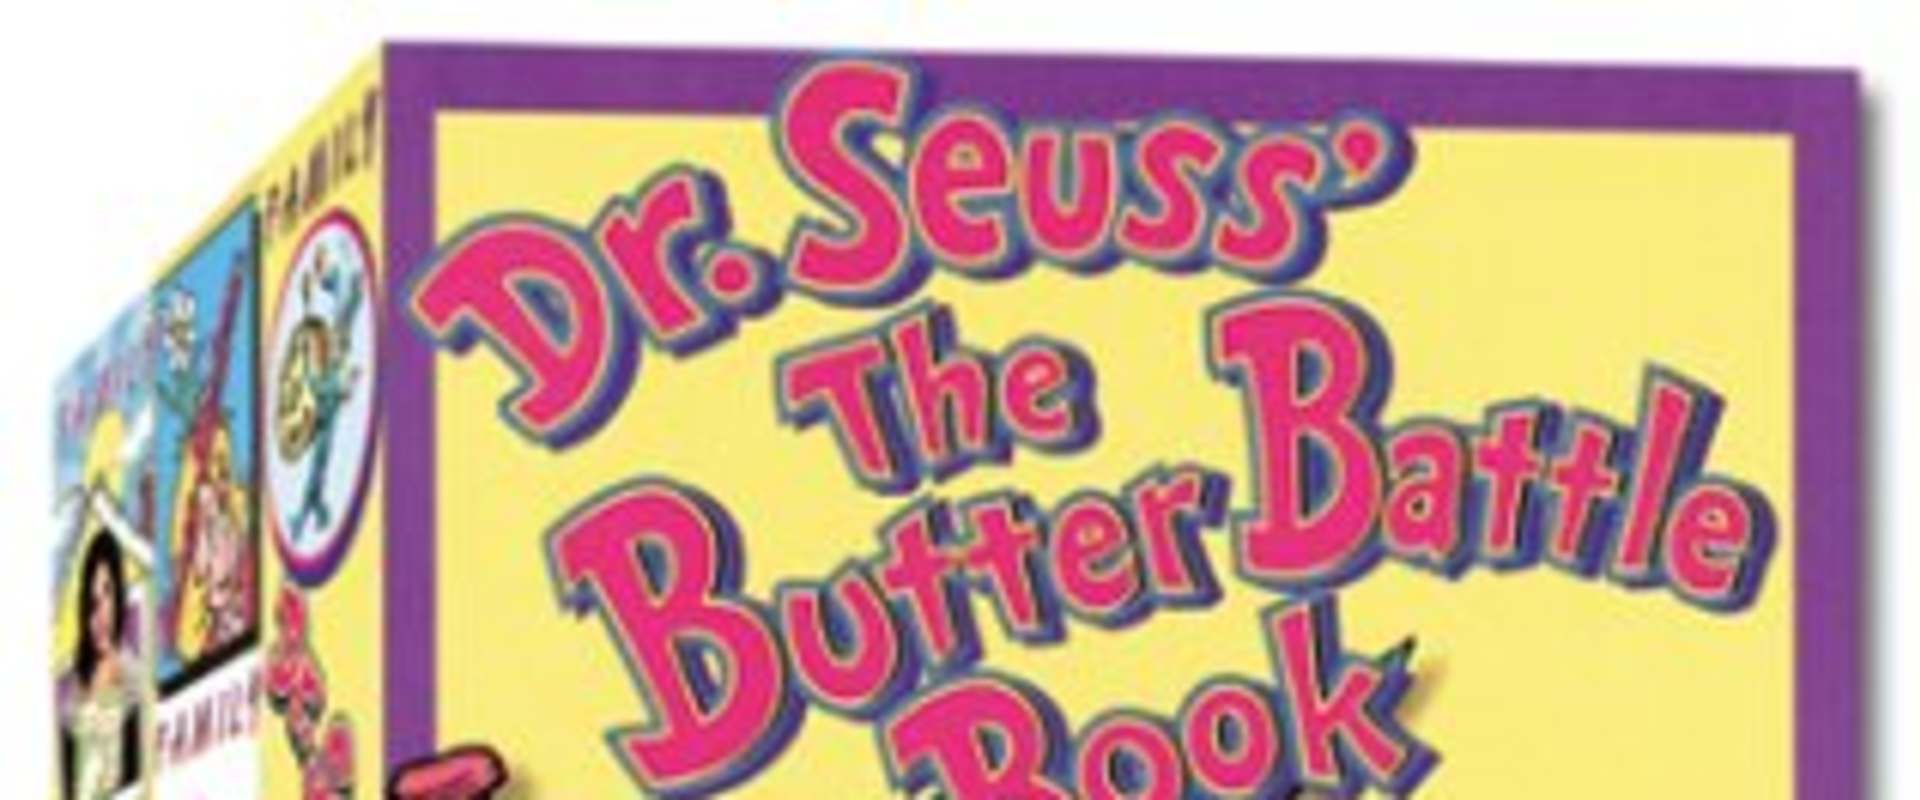 In Search of Dr. Seuss background 1